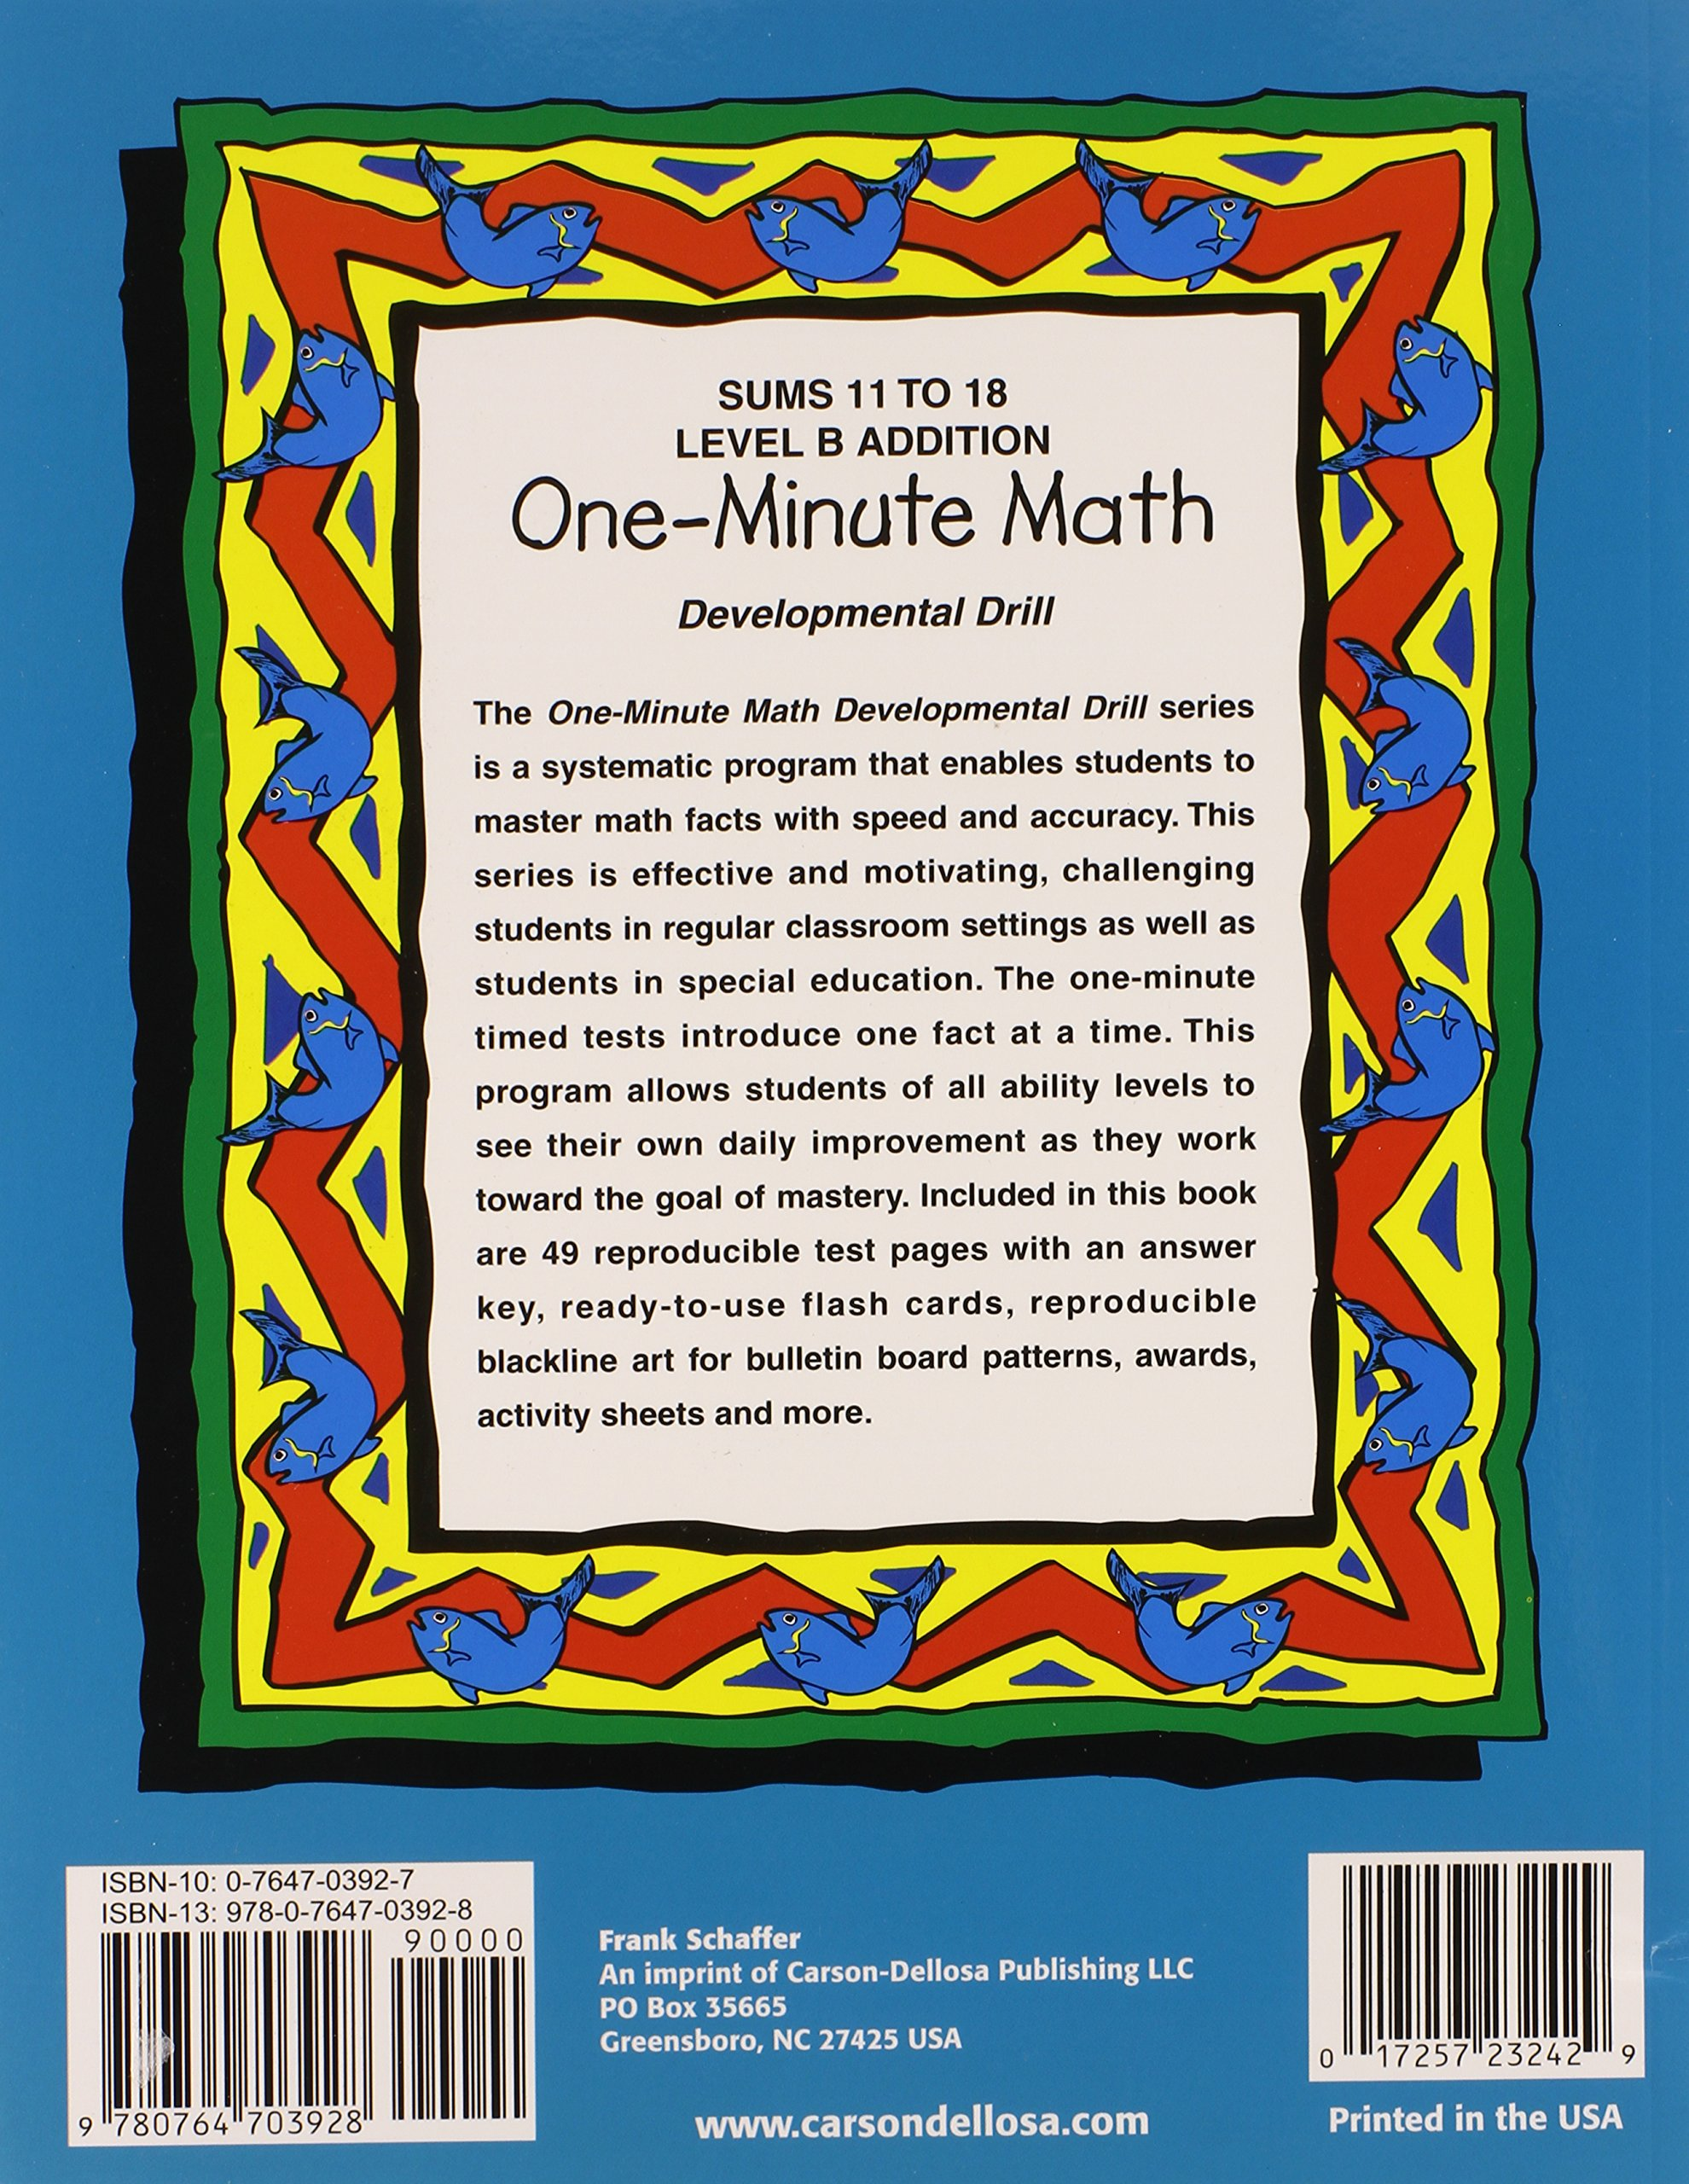 worksheet Frank Schaffer Publications Worksheets one minute math level b addition sums 11 to 18 fs 23242 theresa warnick 0017257232429 amazon com books